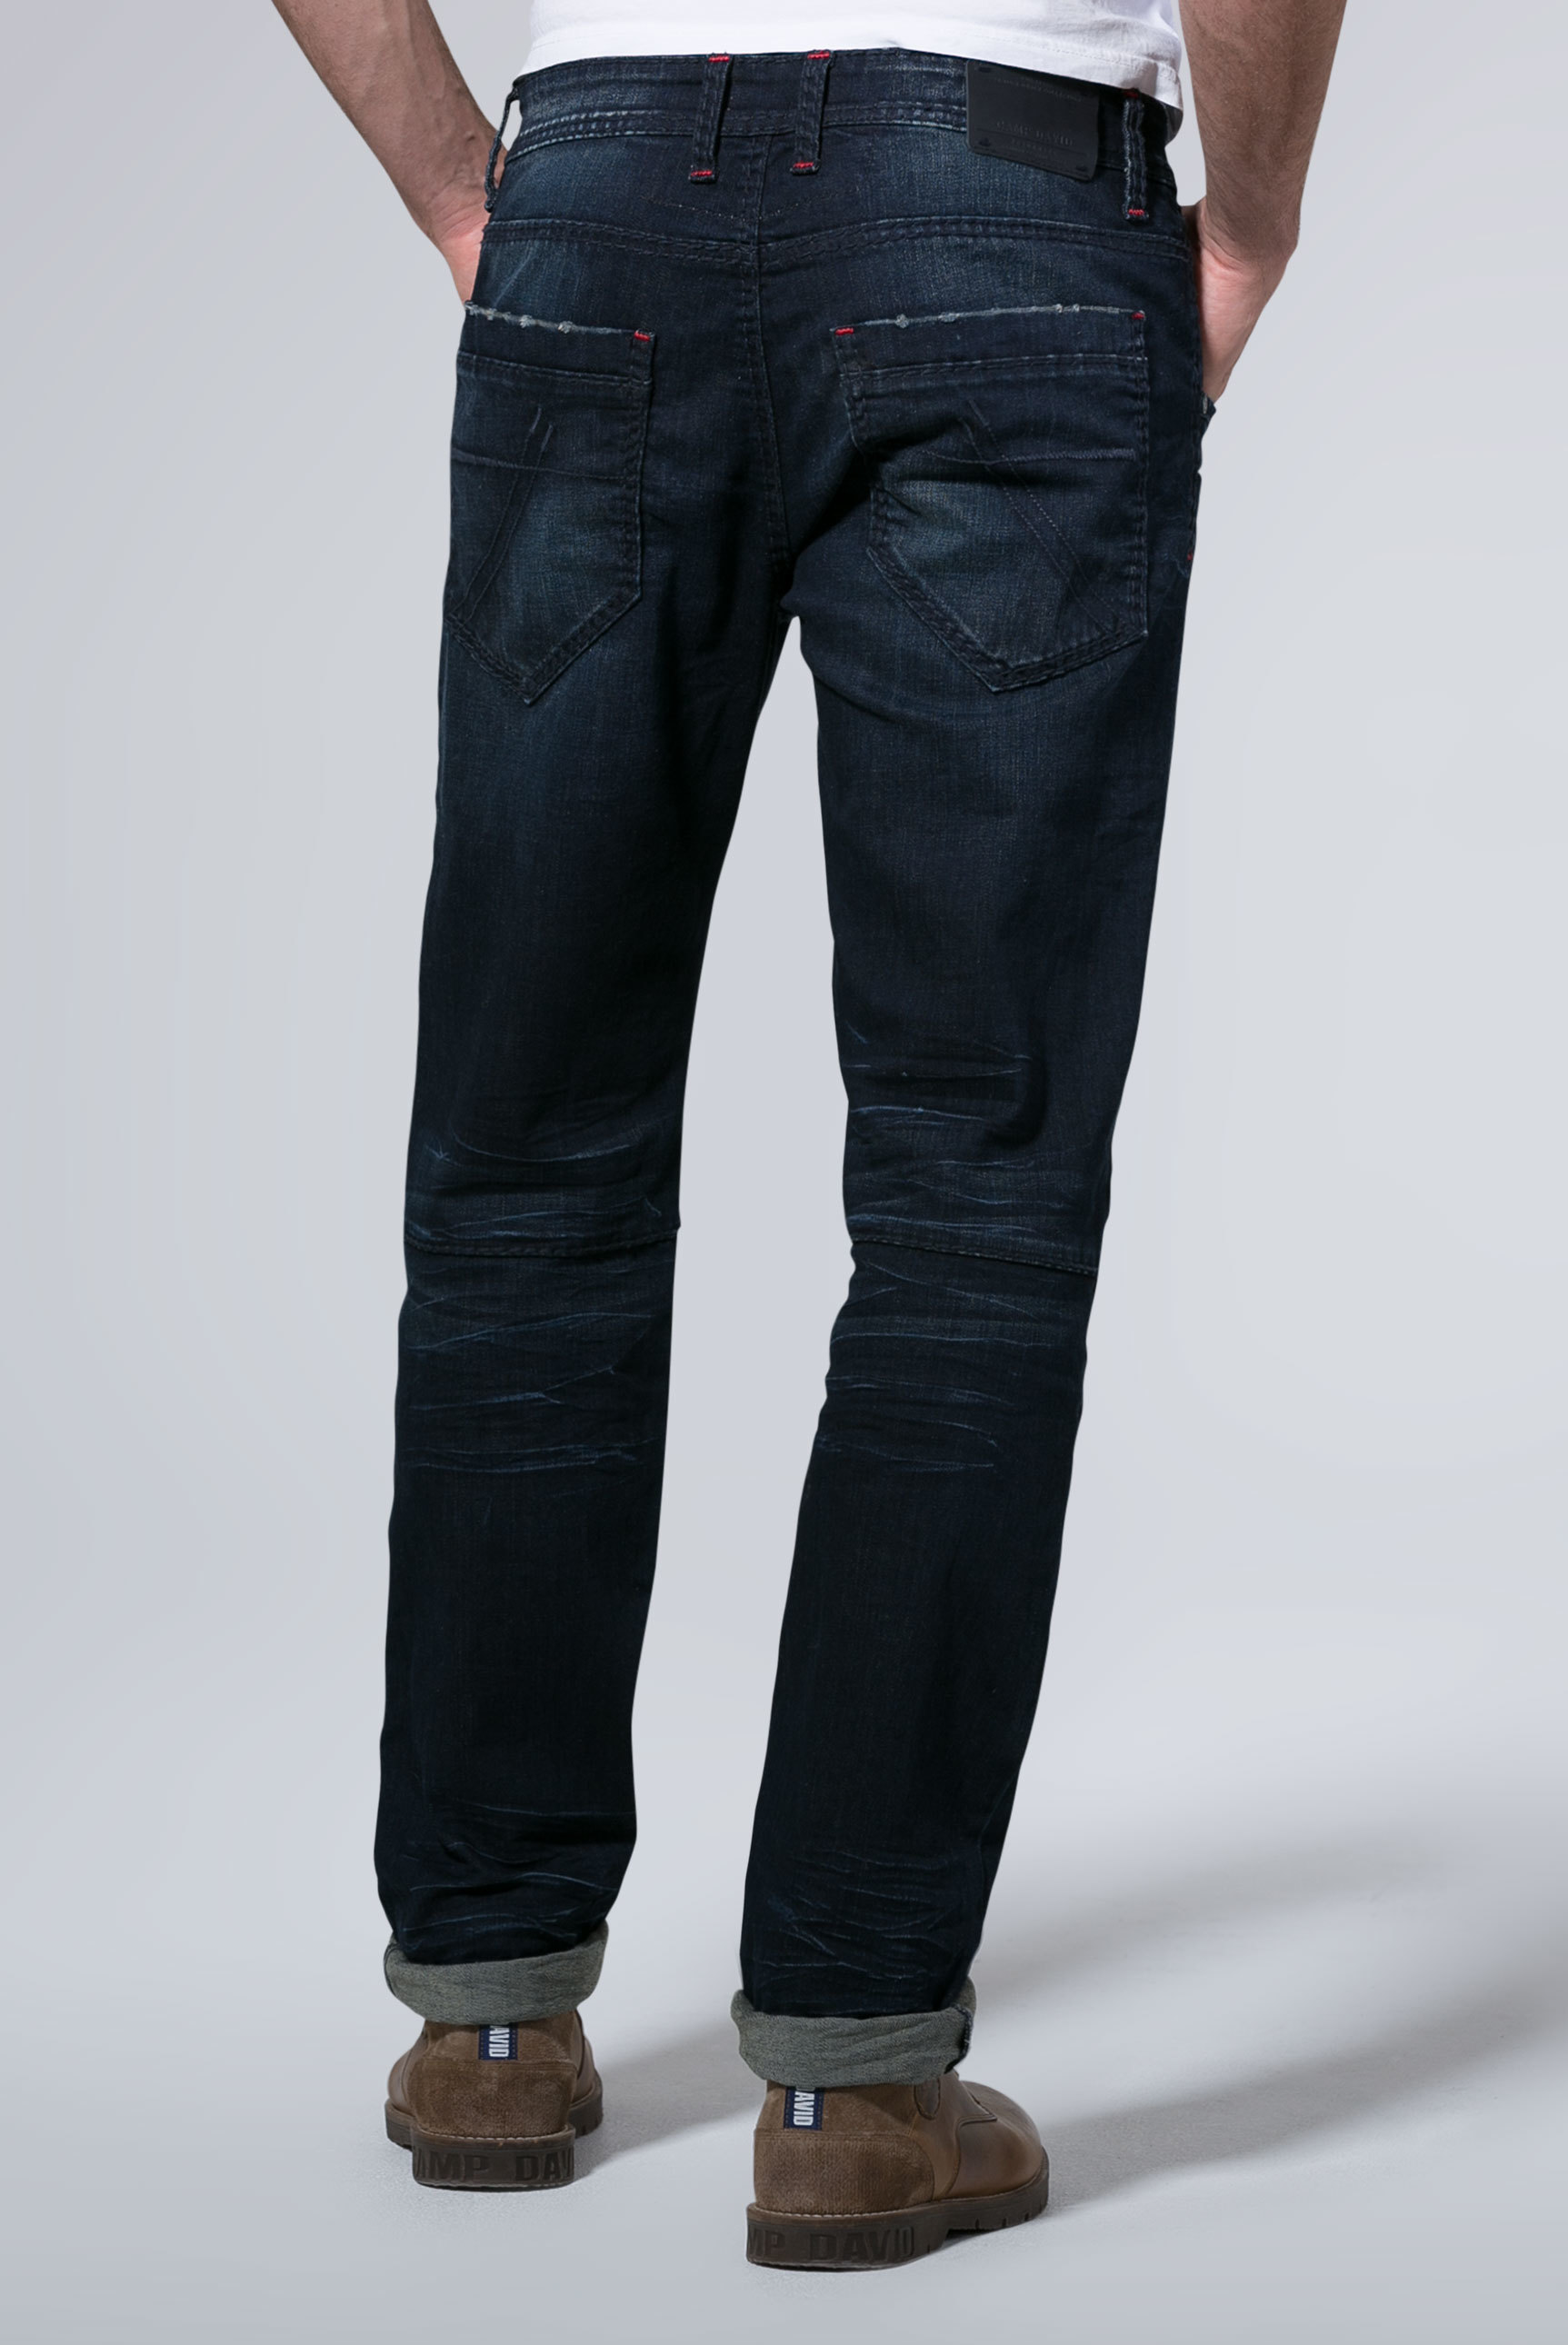 Jeans WI:LL im Vintage Look mit Patches Worker